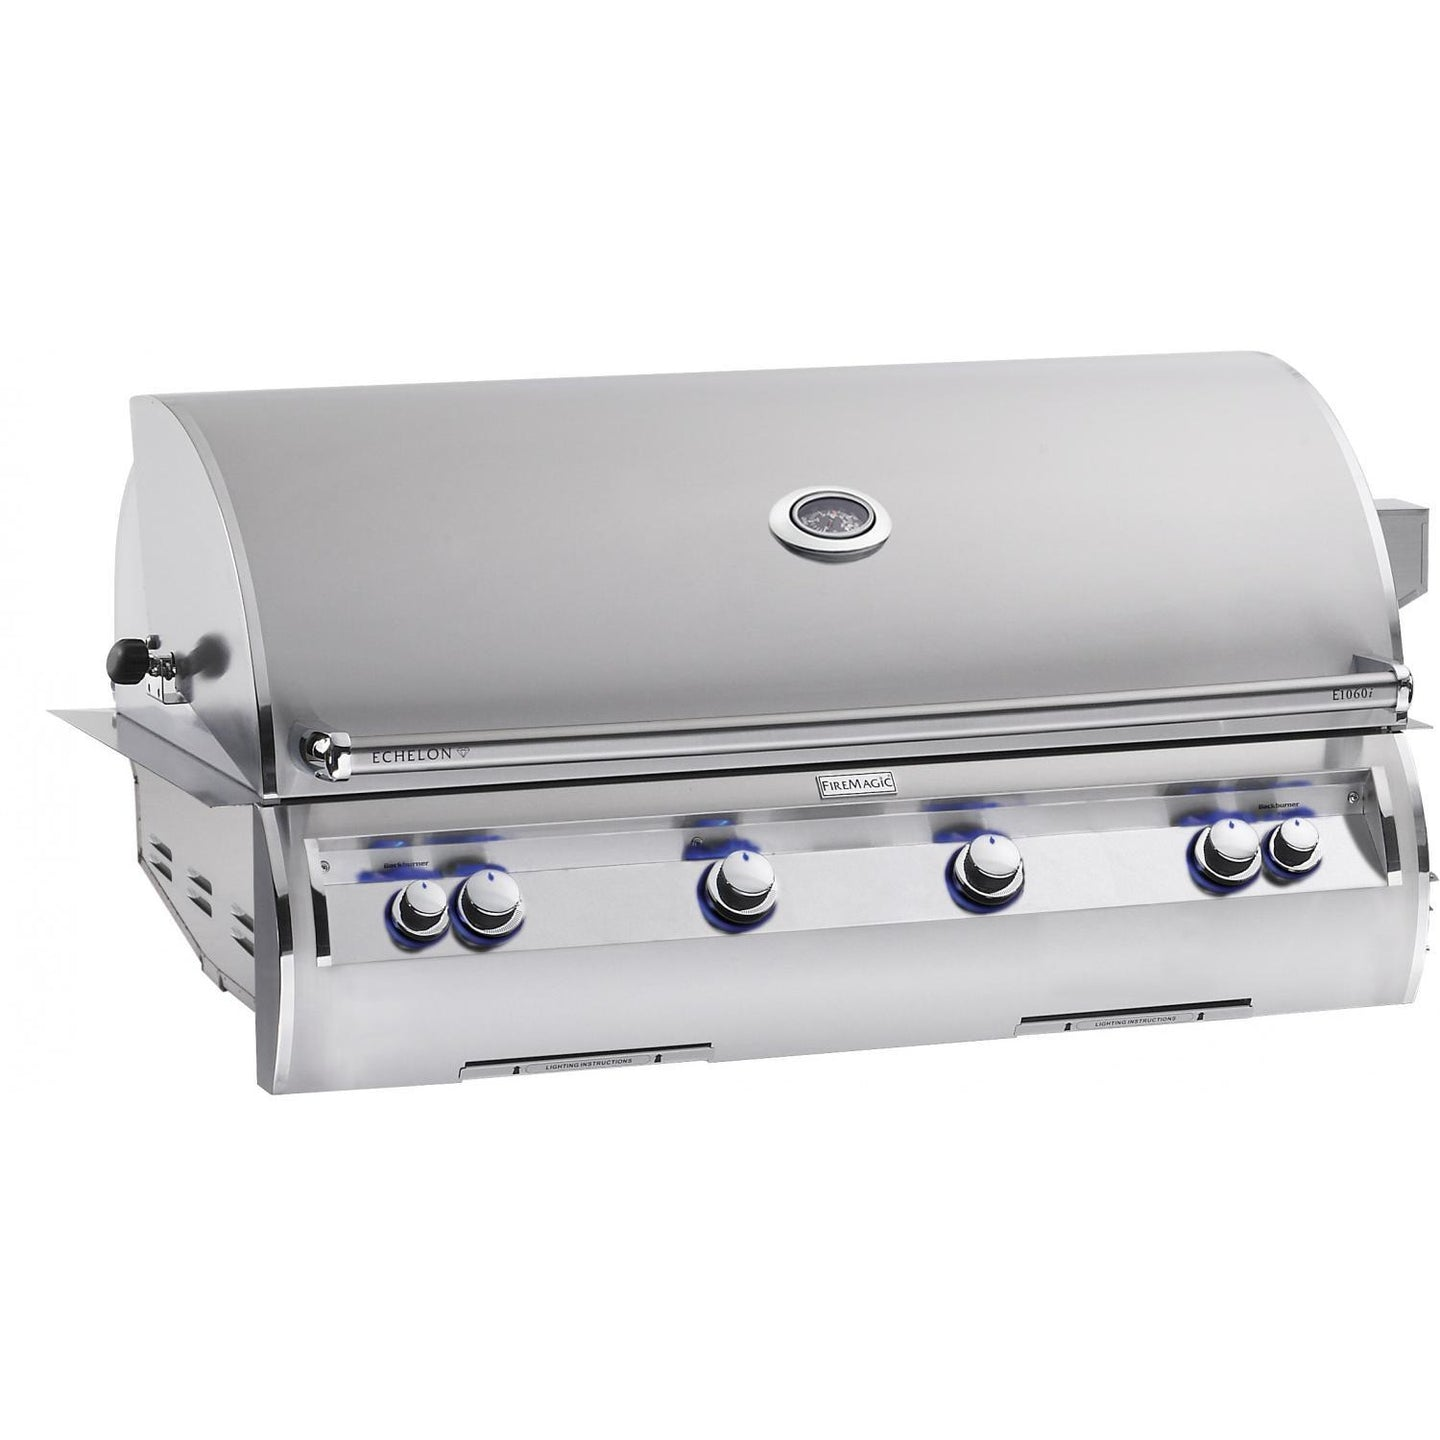 Fire Magic Echelon 48-Inch Natural Gas Built-In Grill 191-E1060i-4EAN - M&K Grills